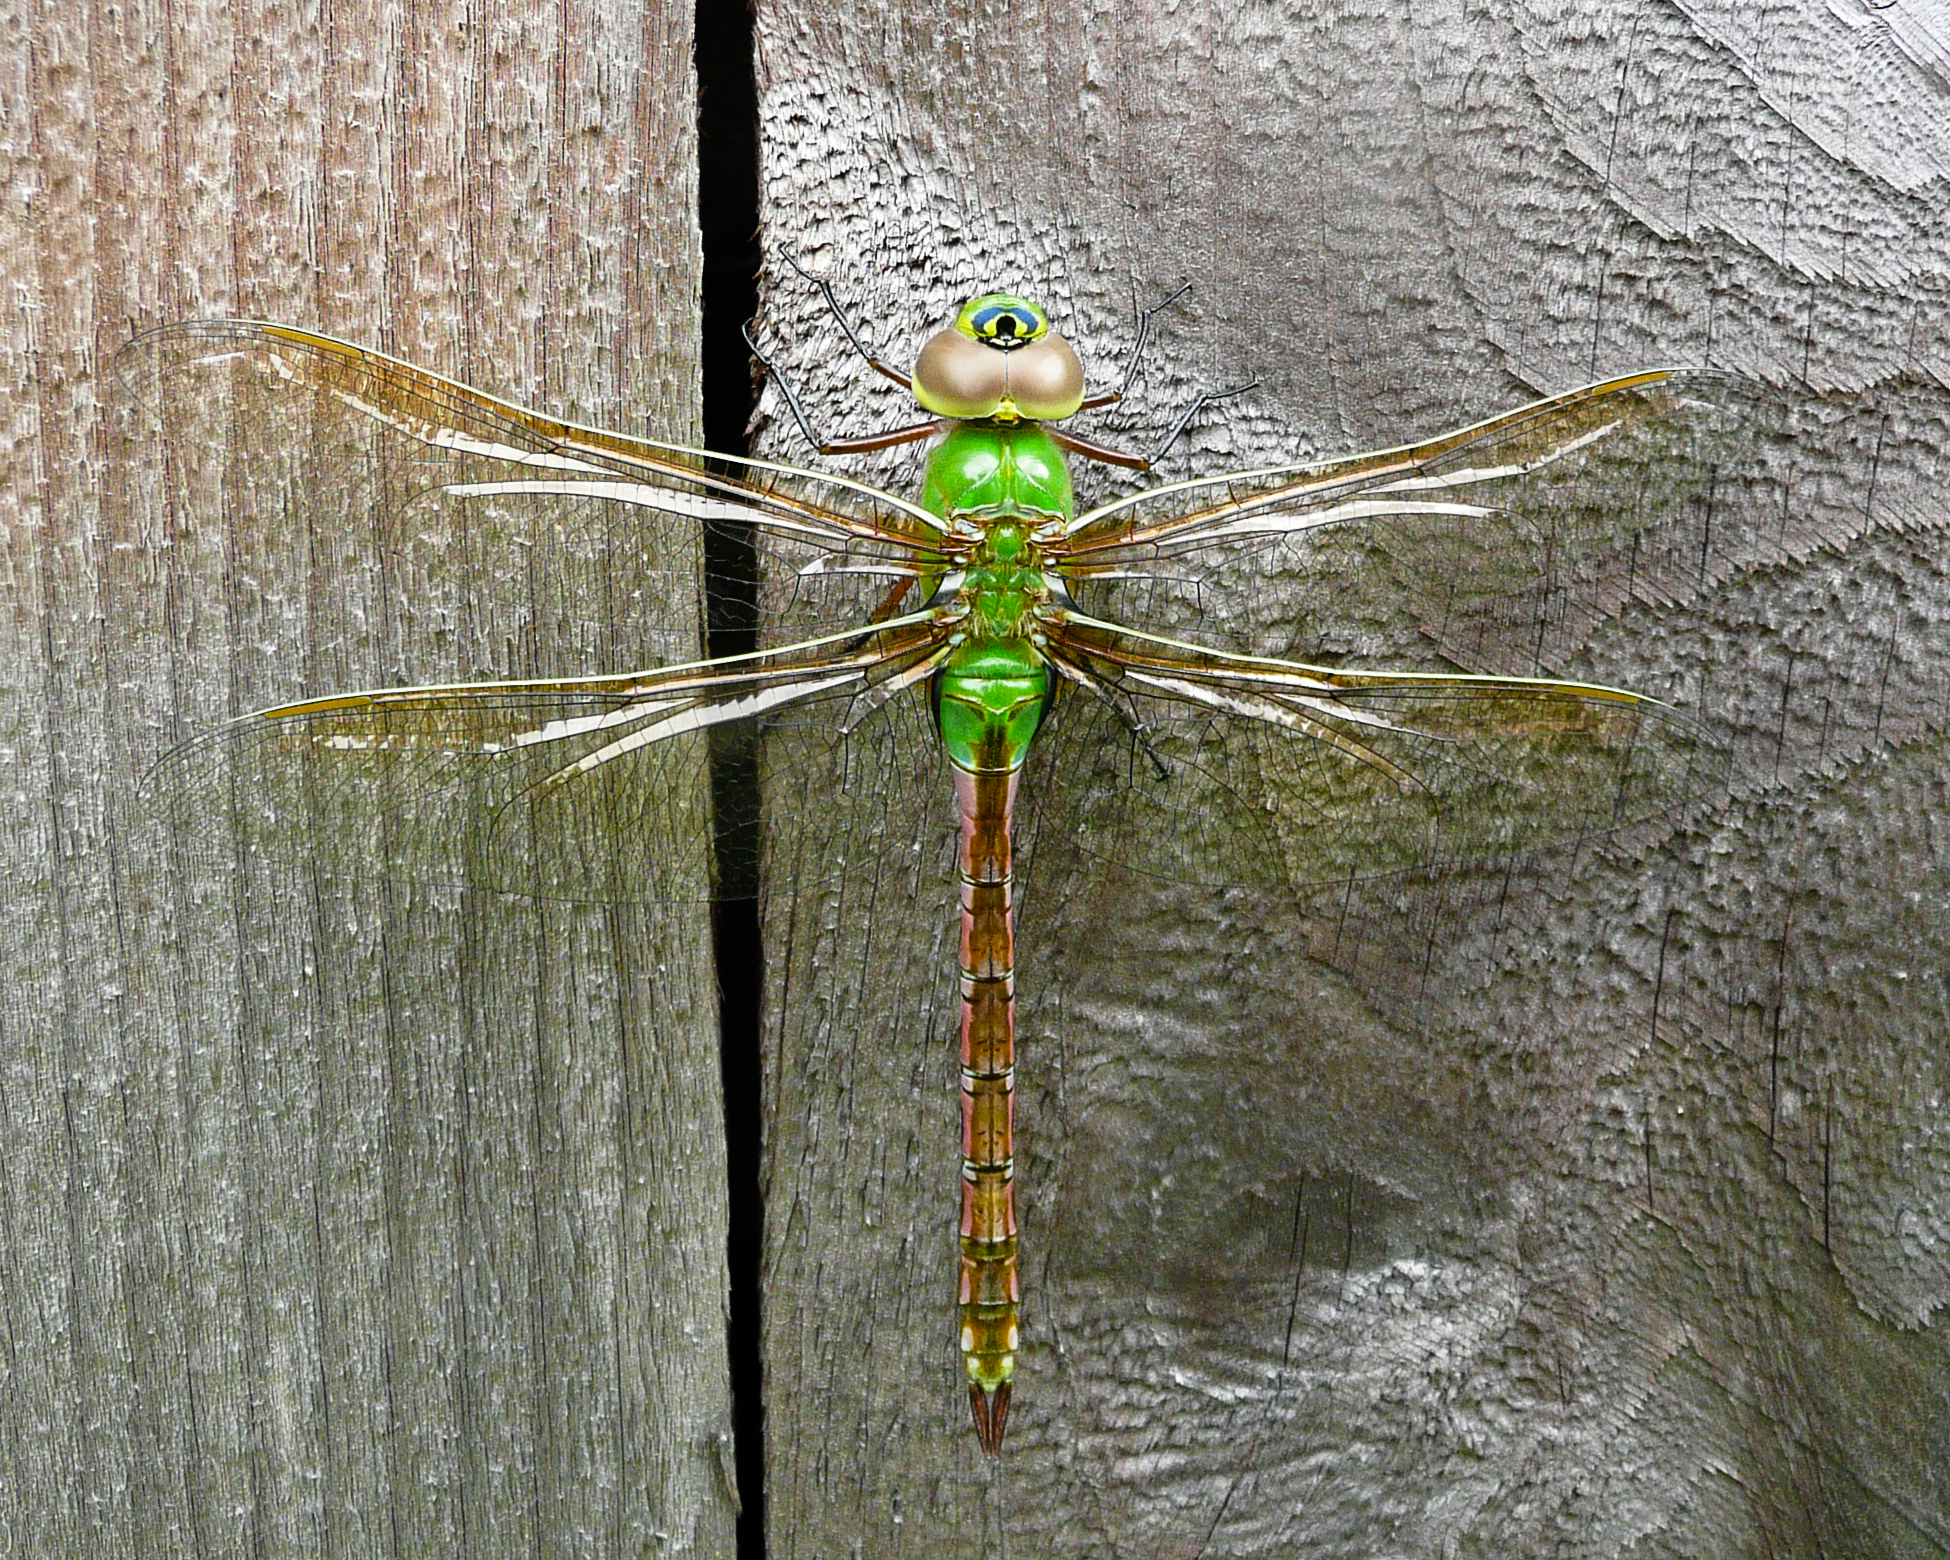 Green dragonfly pictures - photo#31